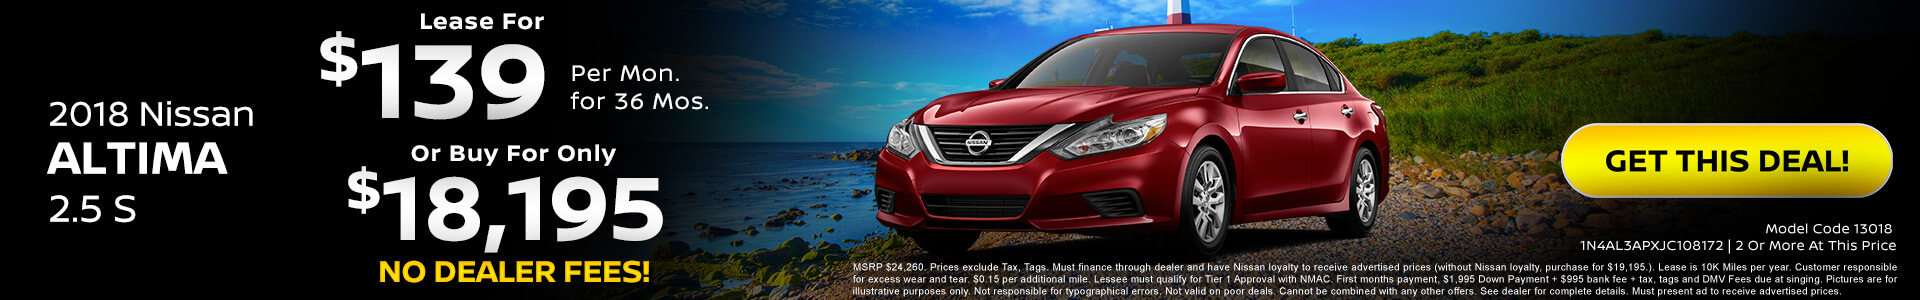 Nissan Altima $139 Lease, $17,995 Purchase